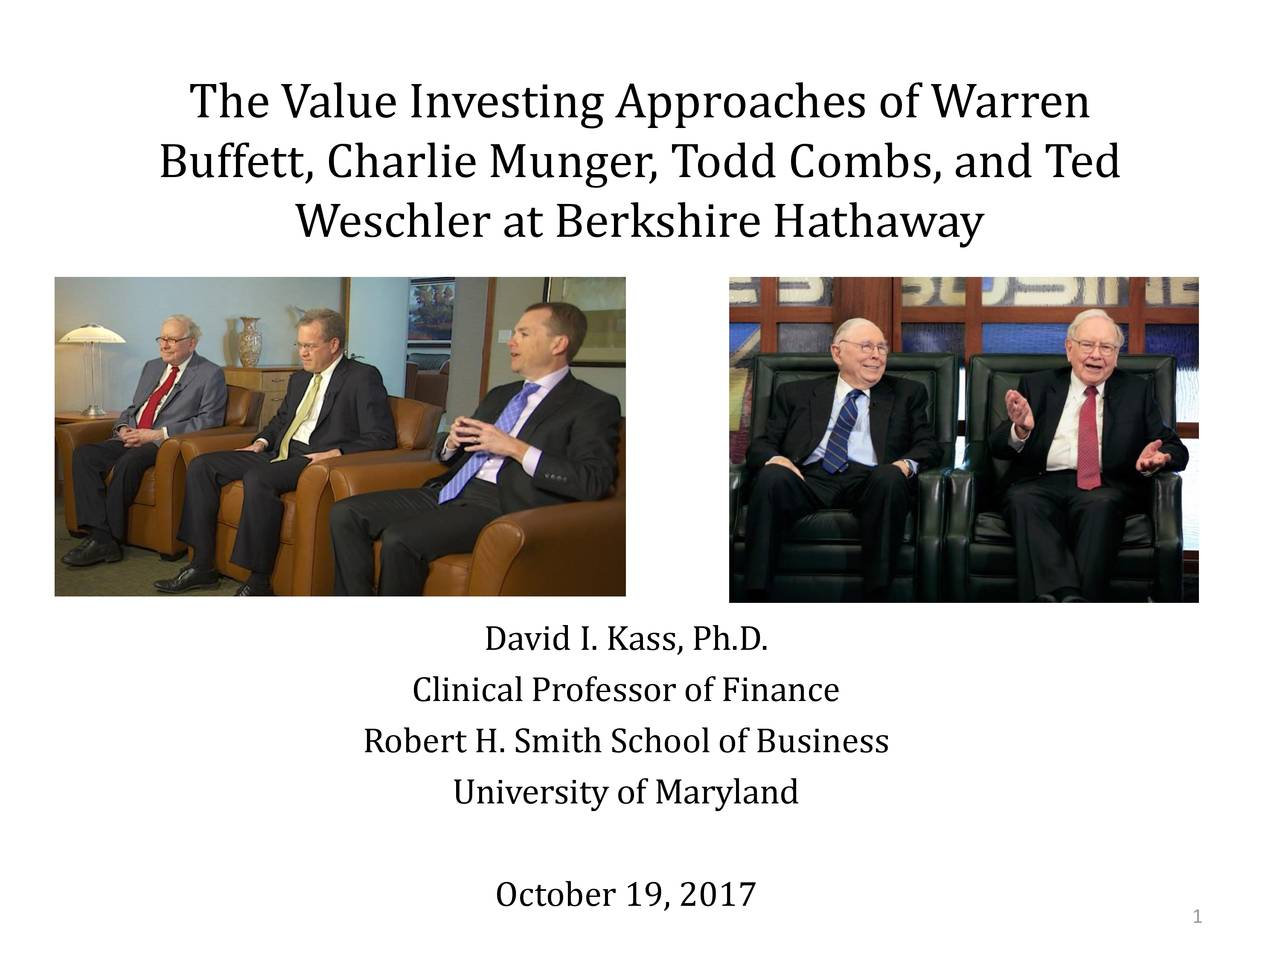 The Value Investing Approaches of Warren Buffett, Charlie Munger, Todd Combs, and Ted Weschler at Berkshire Hathaway David I. Kass , Ph.D. Clinical Professor of Finance Robert H. Smith School of Business University of Maryland October 19, 2017 1